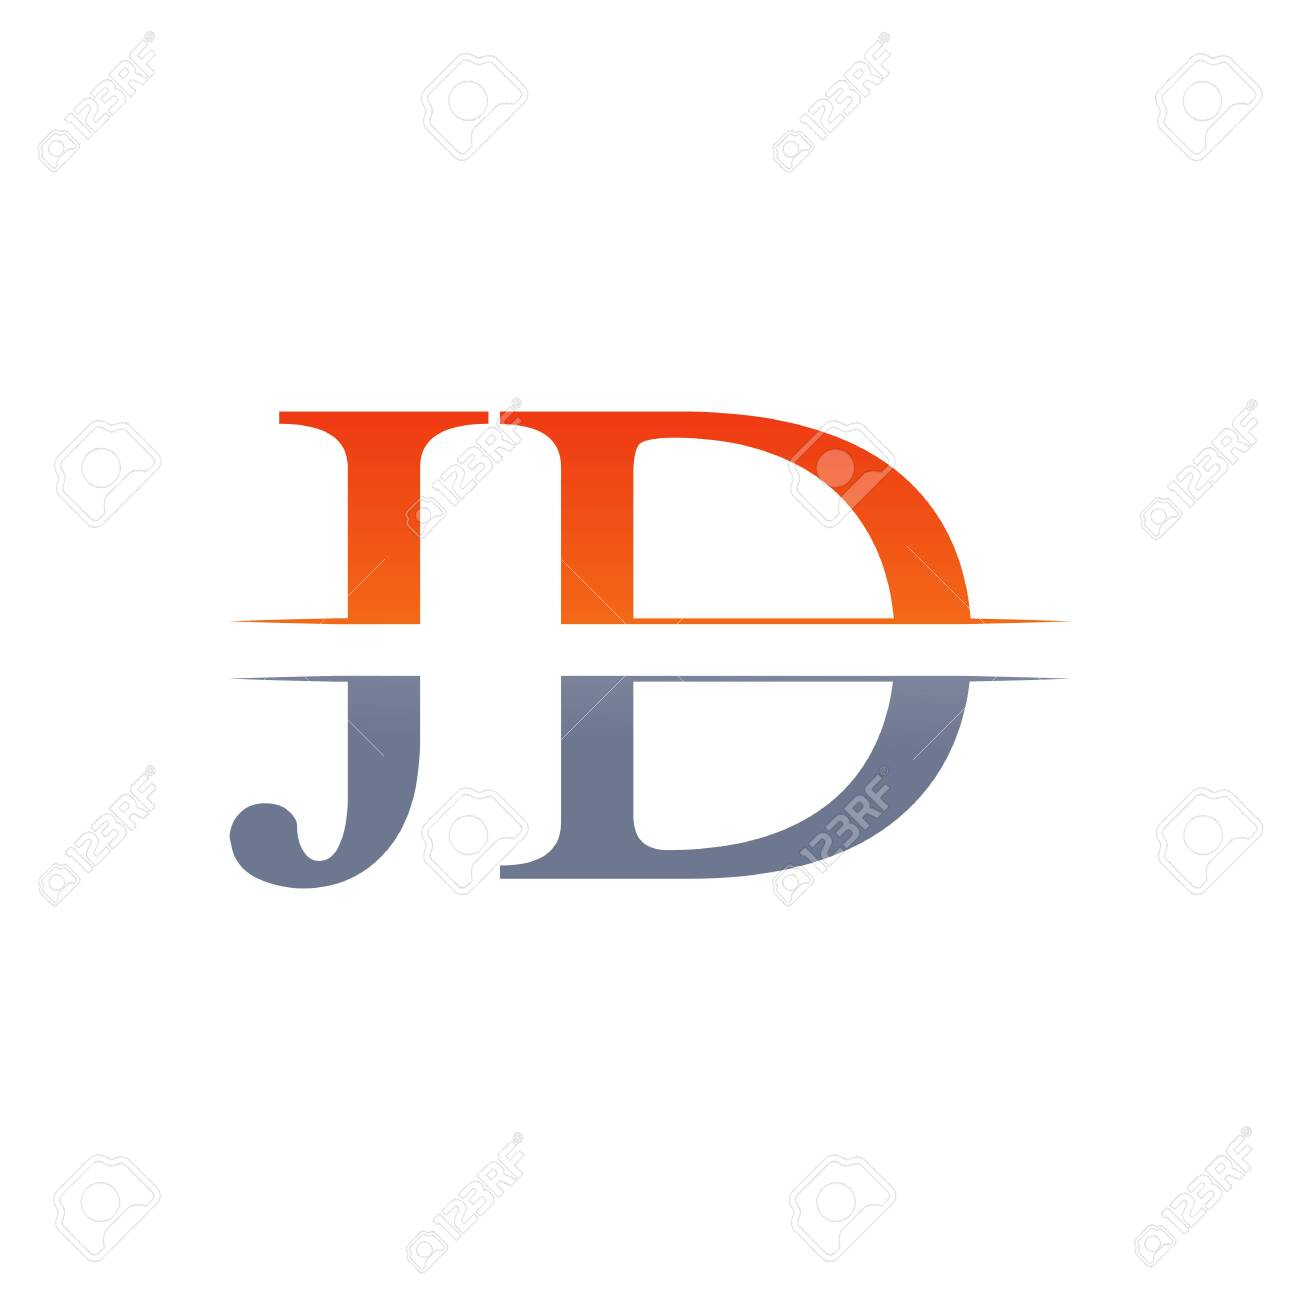 jd letter type logo design vector template abstract letter jd royalty free cliparts vectors and stock illustration image 142202432 jd letter type logo design vector template abstract letter jd